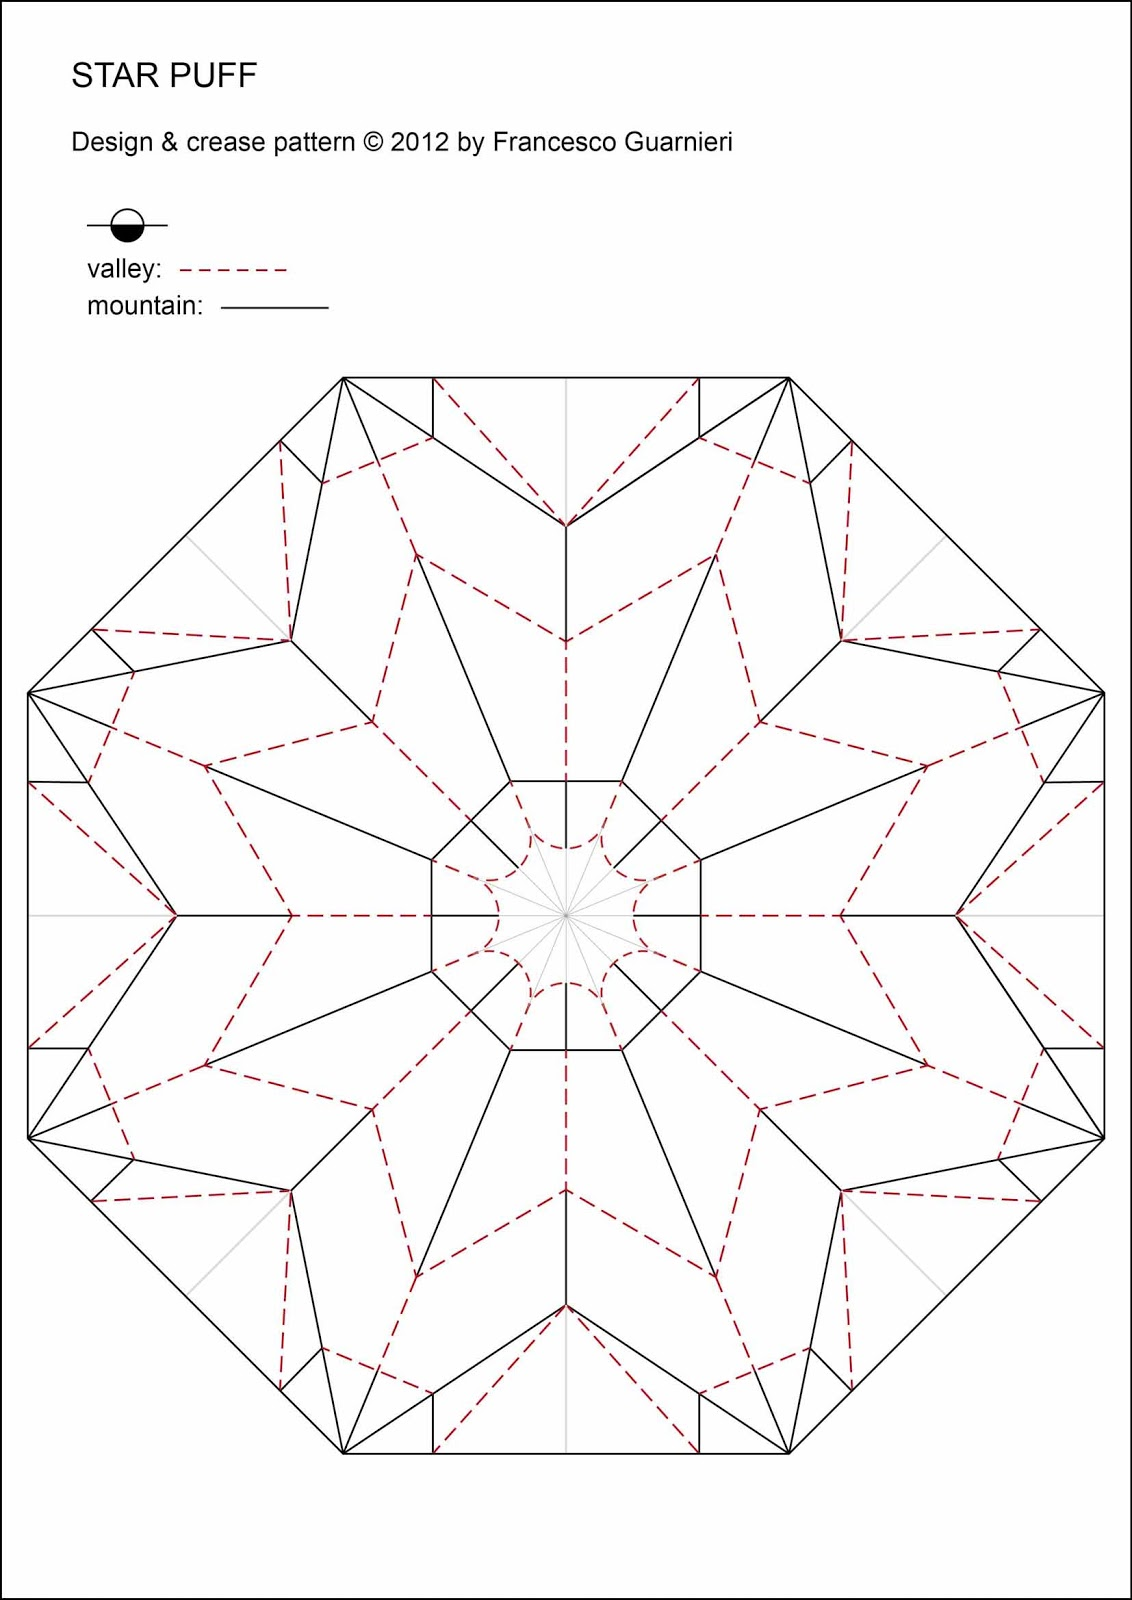 Origami Crease Pattern Star Puff by Francesco Guarnieri